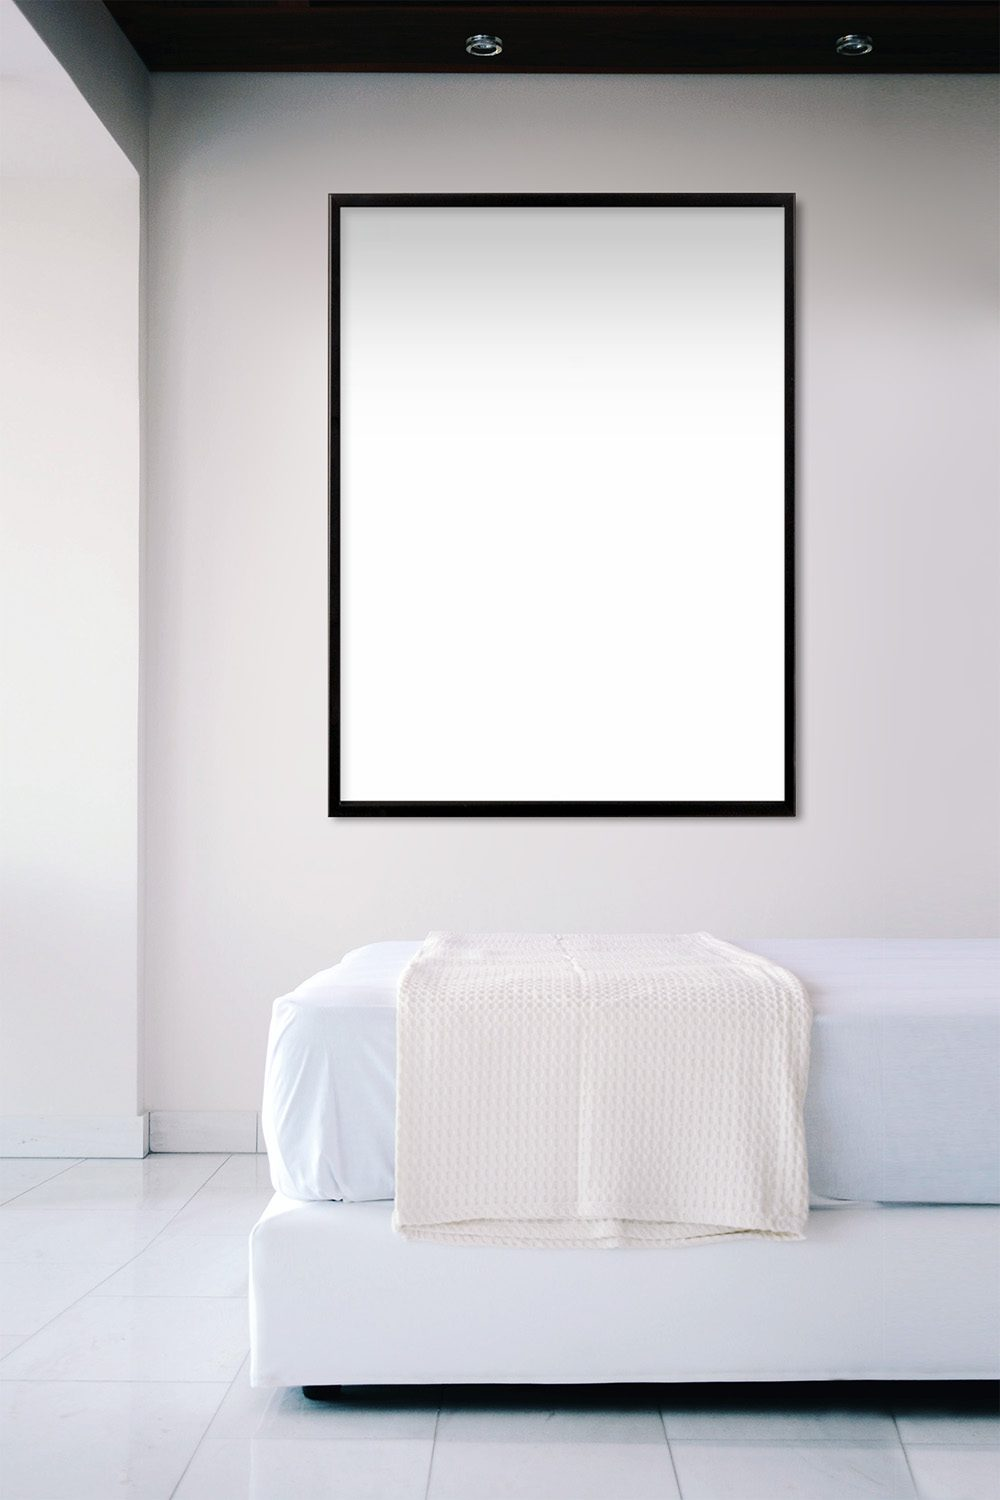 34-wall-frame-picture-mockup